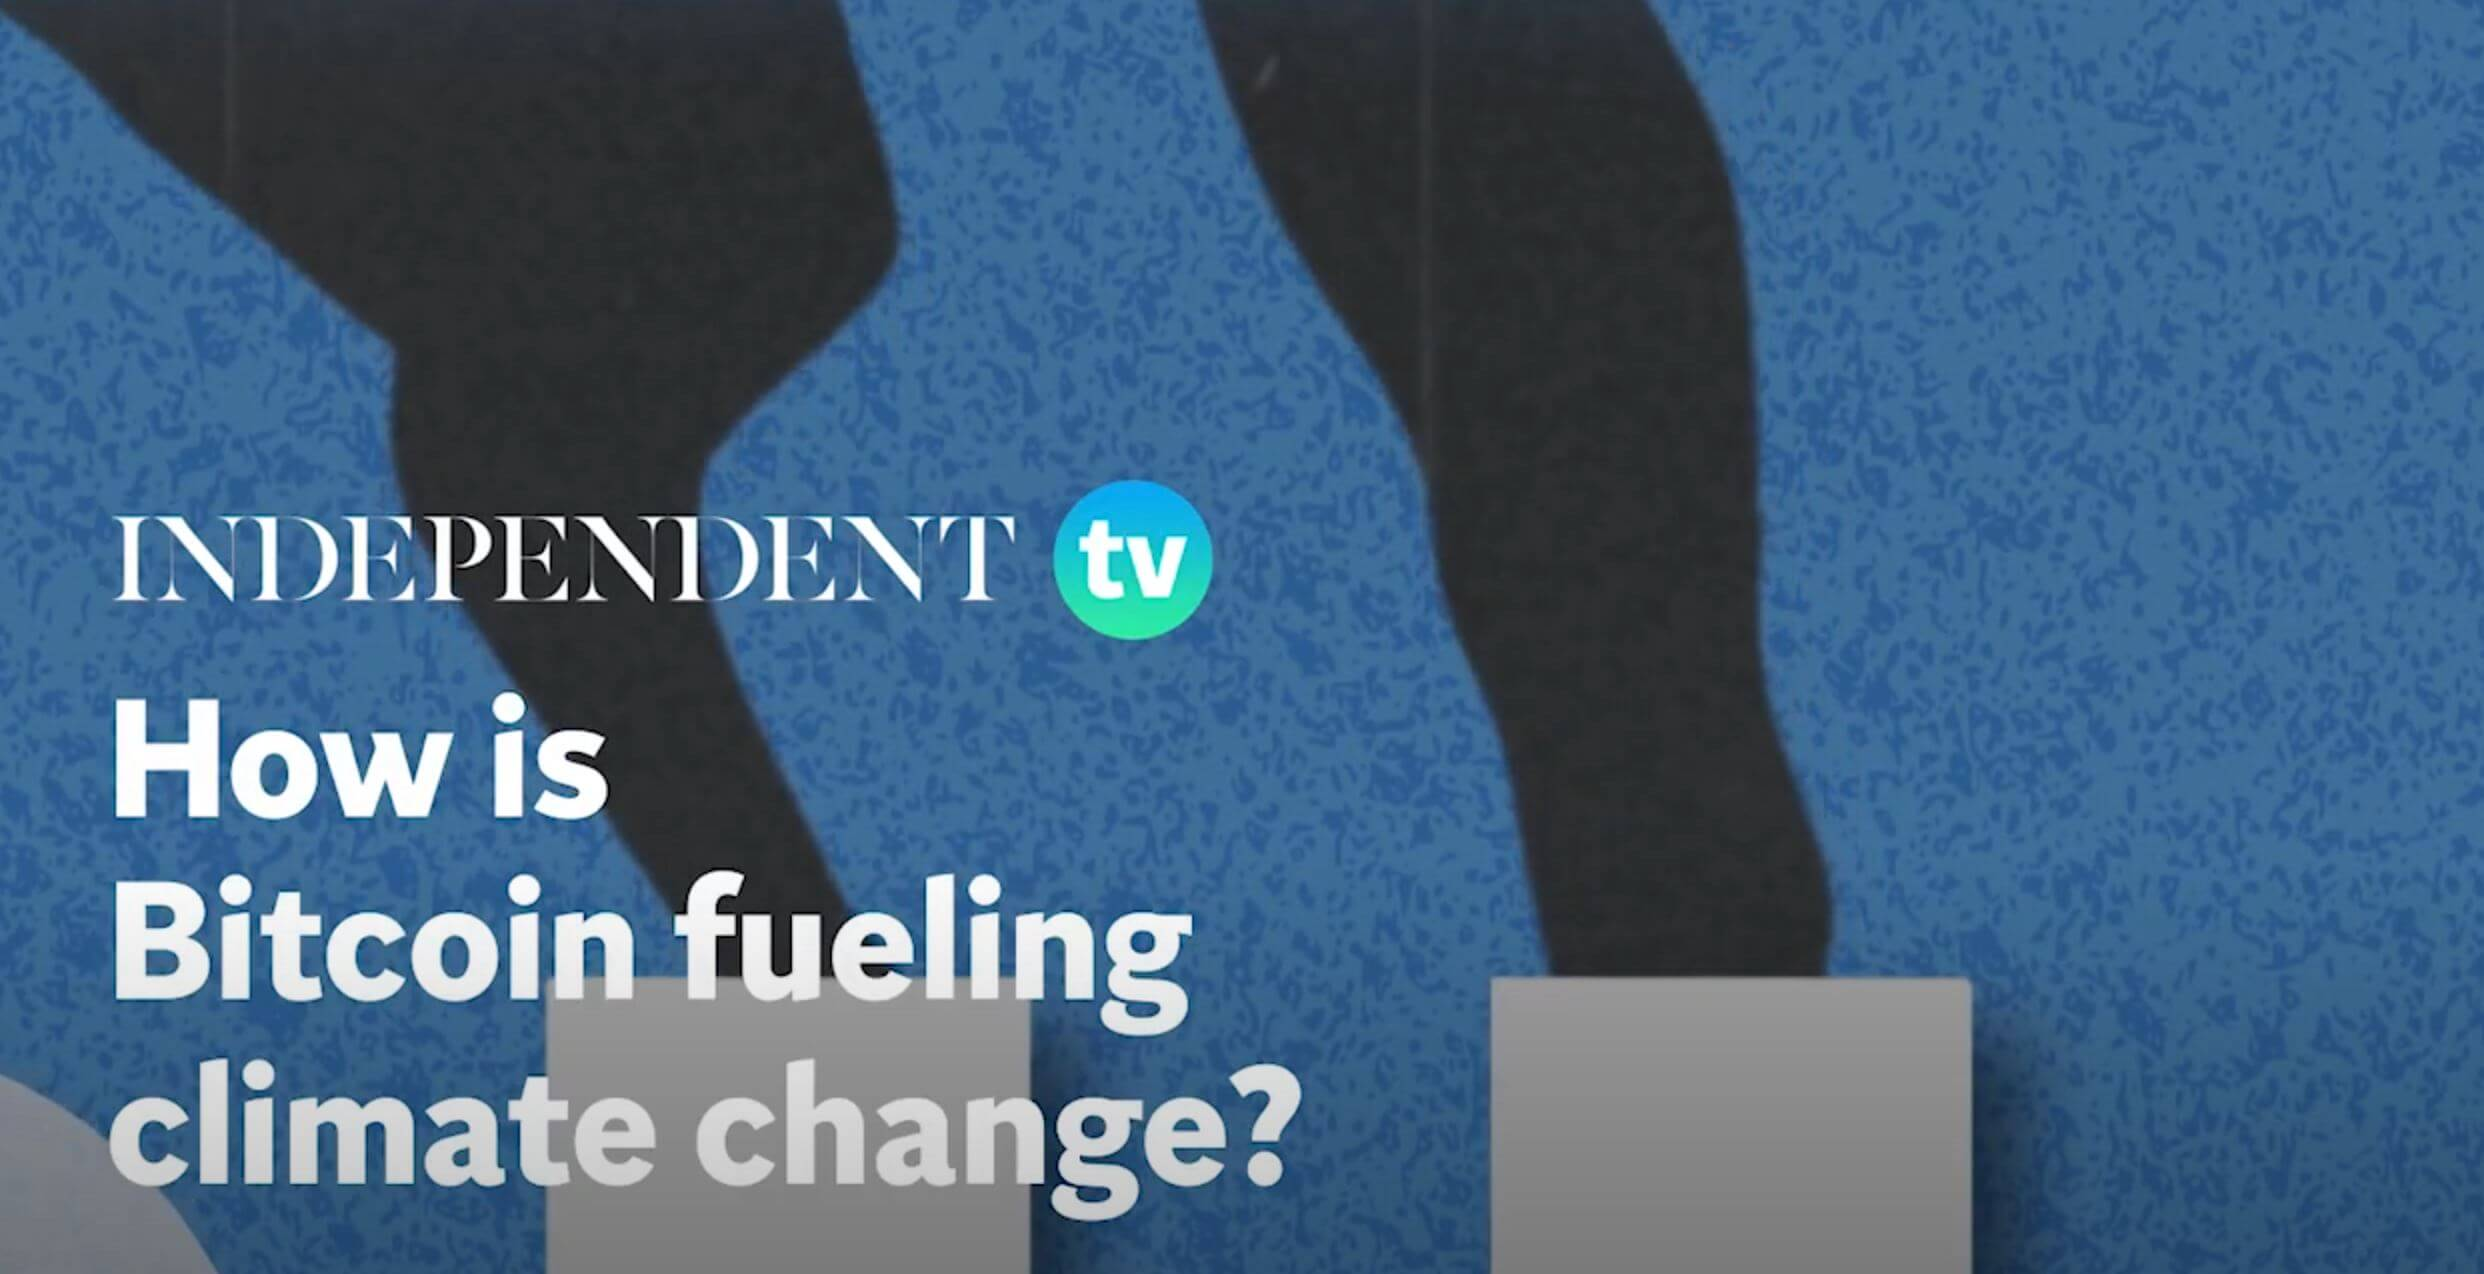 The Independent – How is Bitcoin fueling climate change?